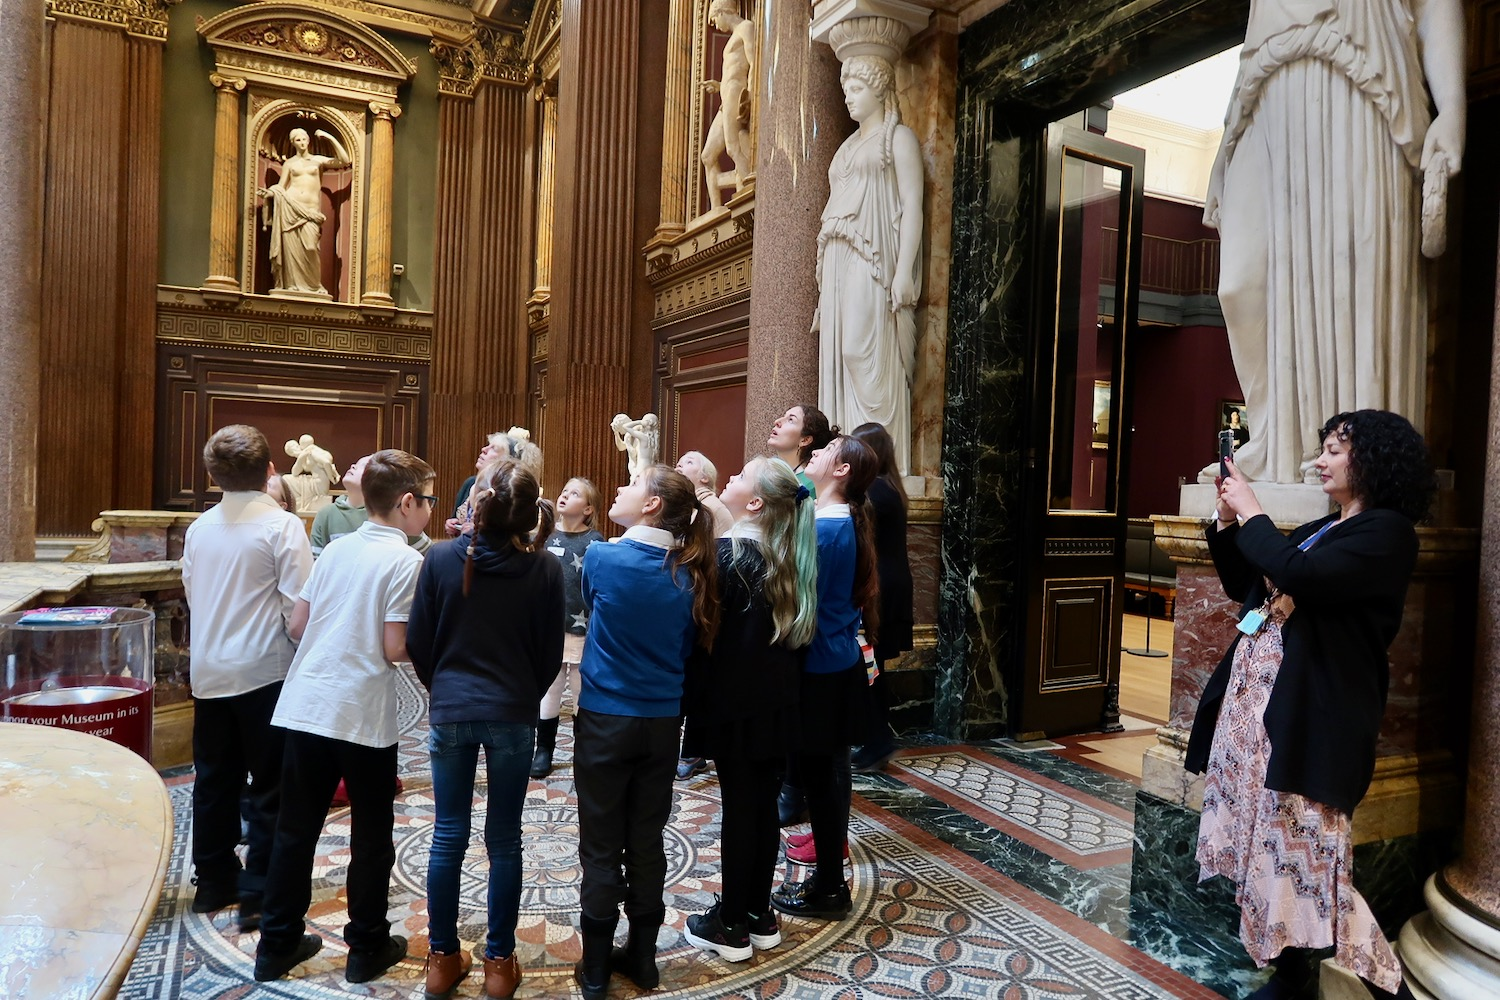 Pupils from Morley Memorial School and St Peters juniors looking at the grand entrance of the Fitzwilliam Museum, Cambridge